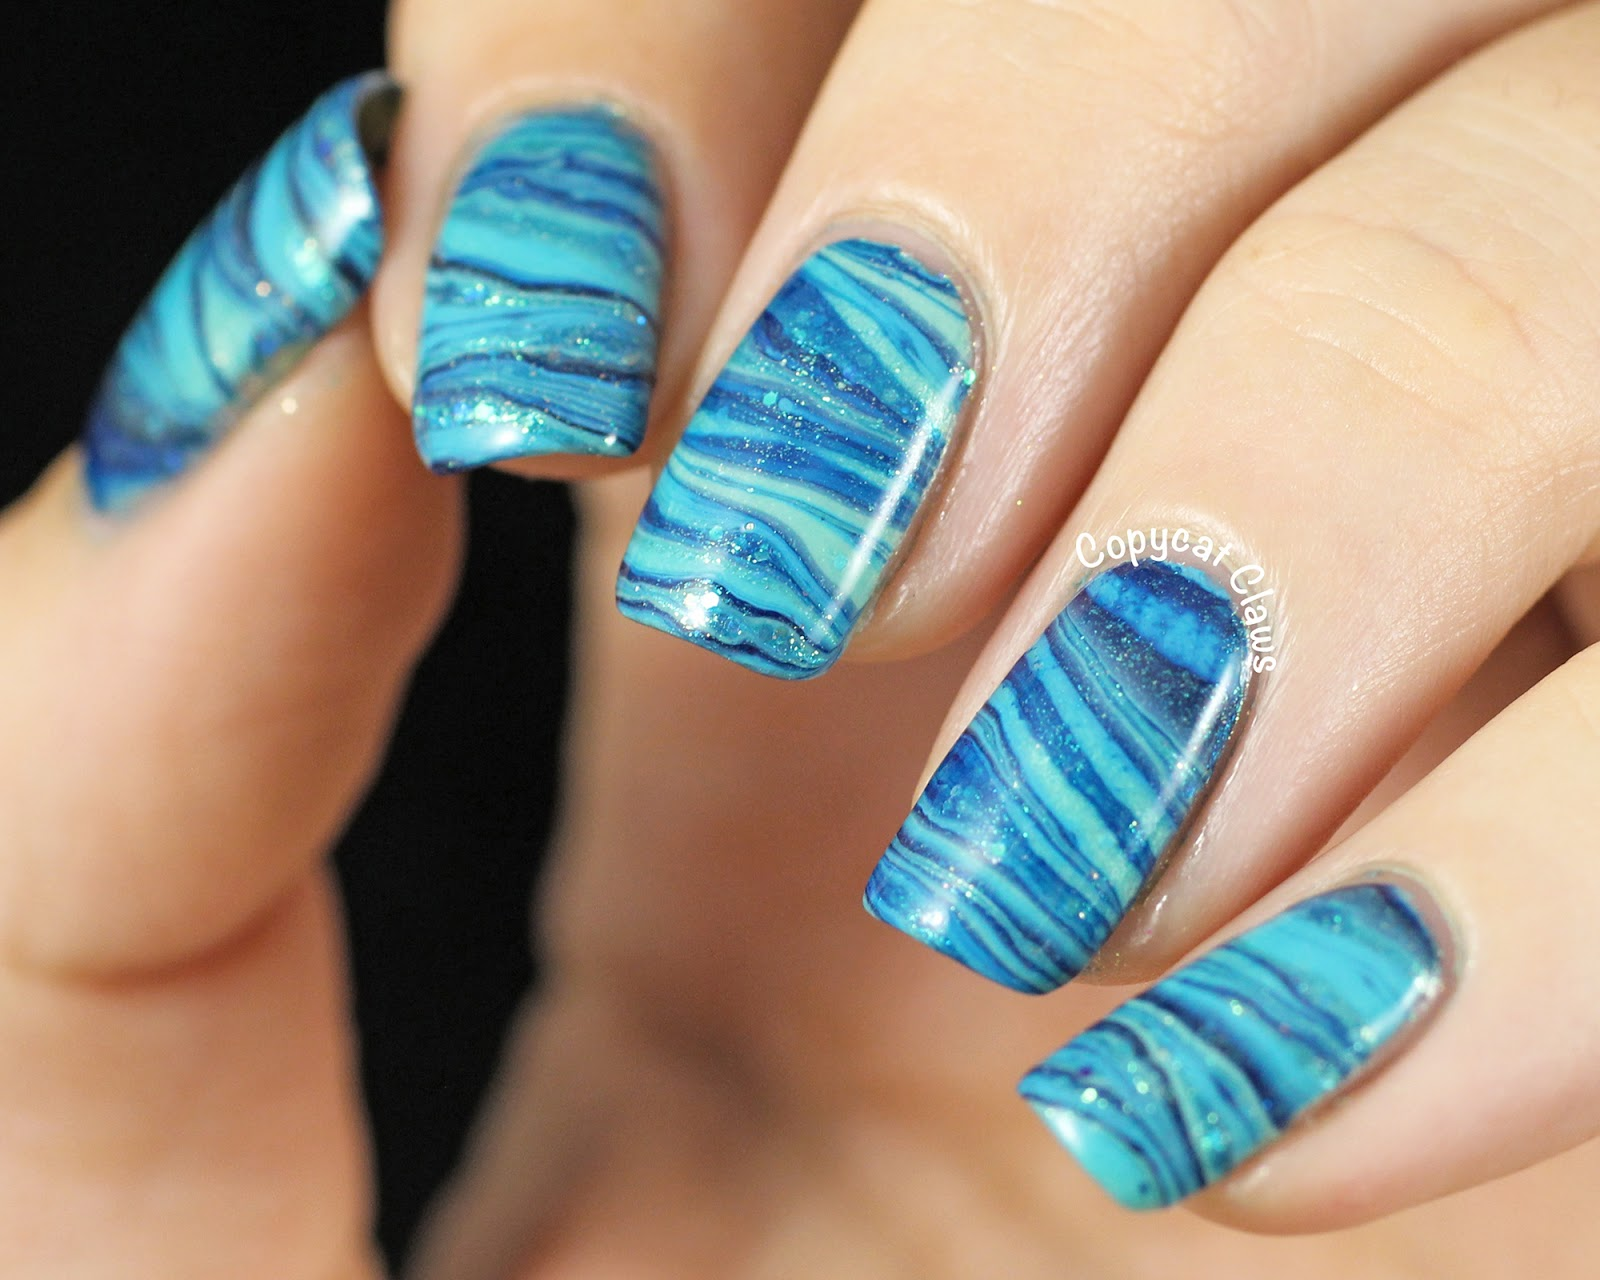 Copycat Claws: 31DC2014 Day 20 - Blue Water Marble Nail Art